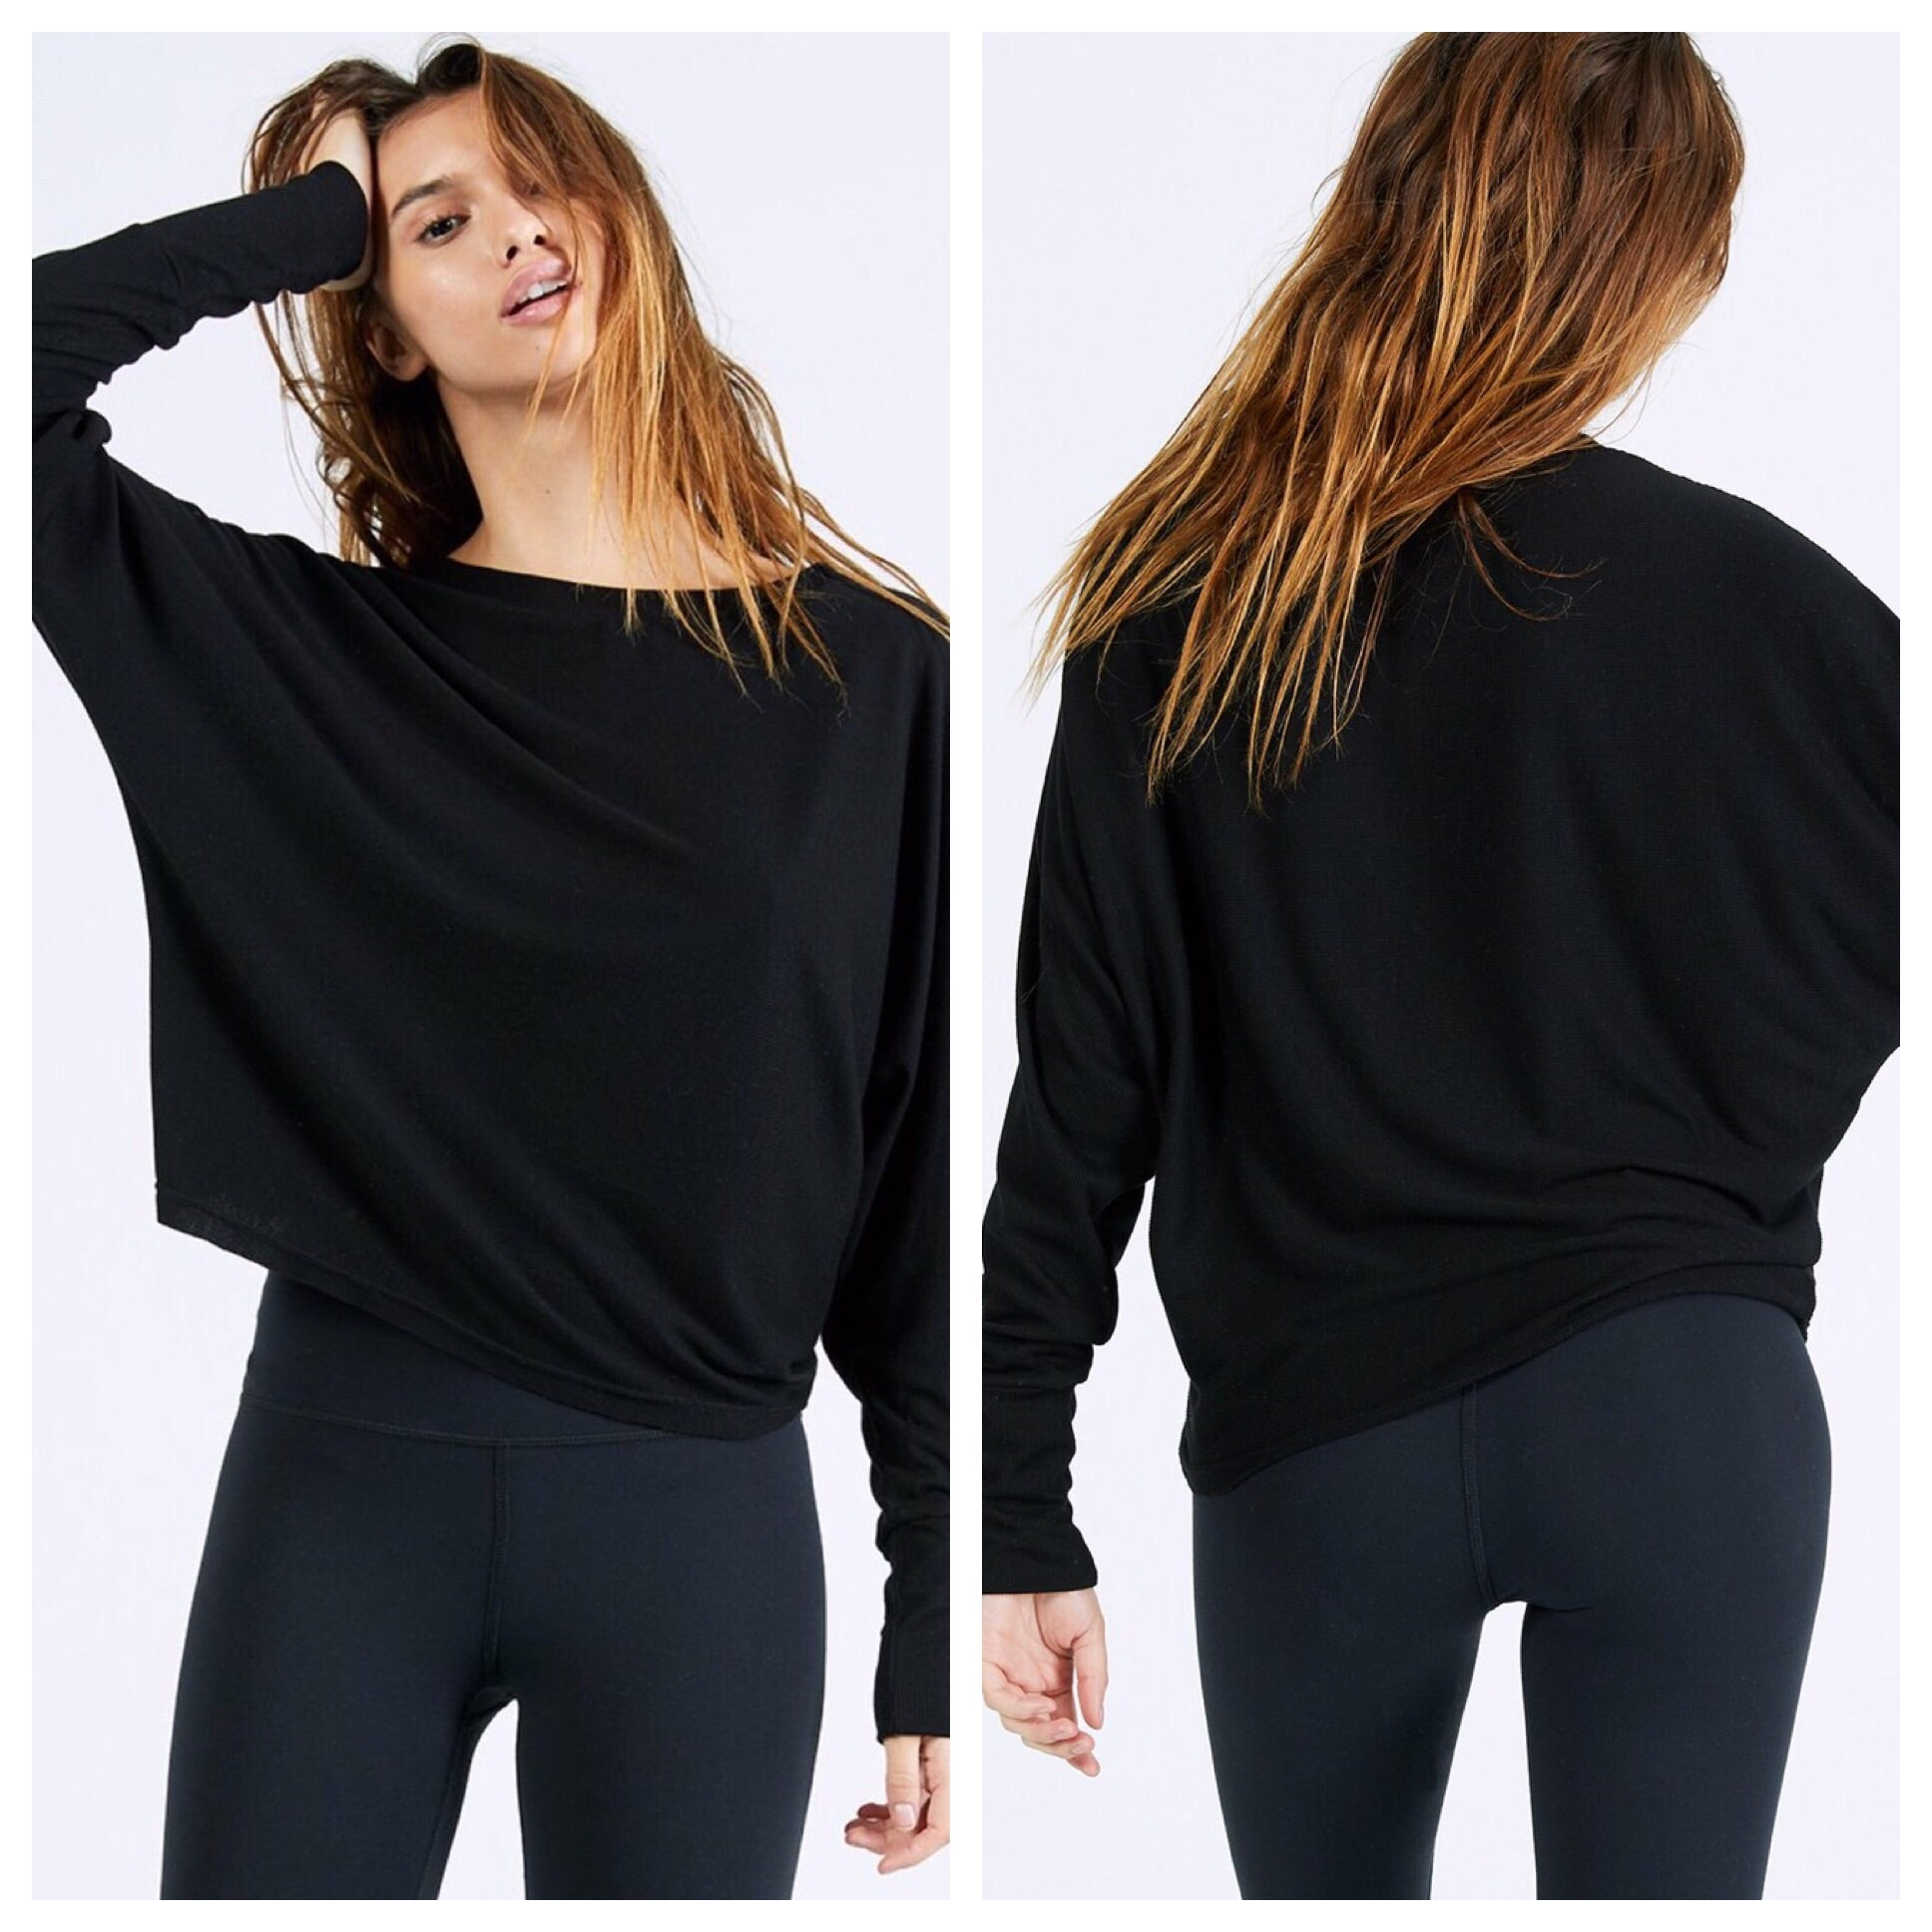 Joah Brown Vital Long Sleeve (Black Rib)